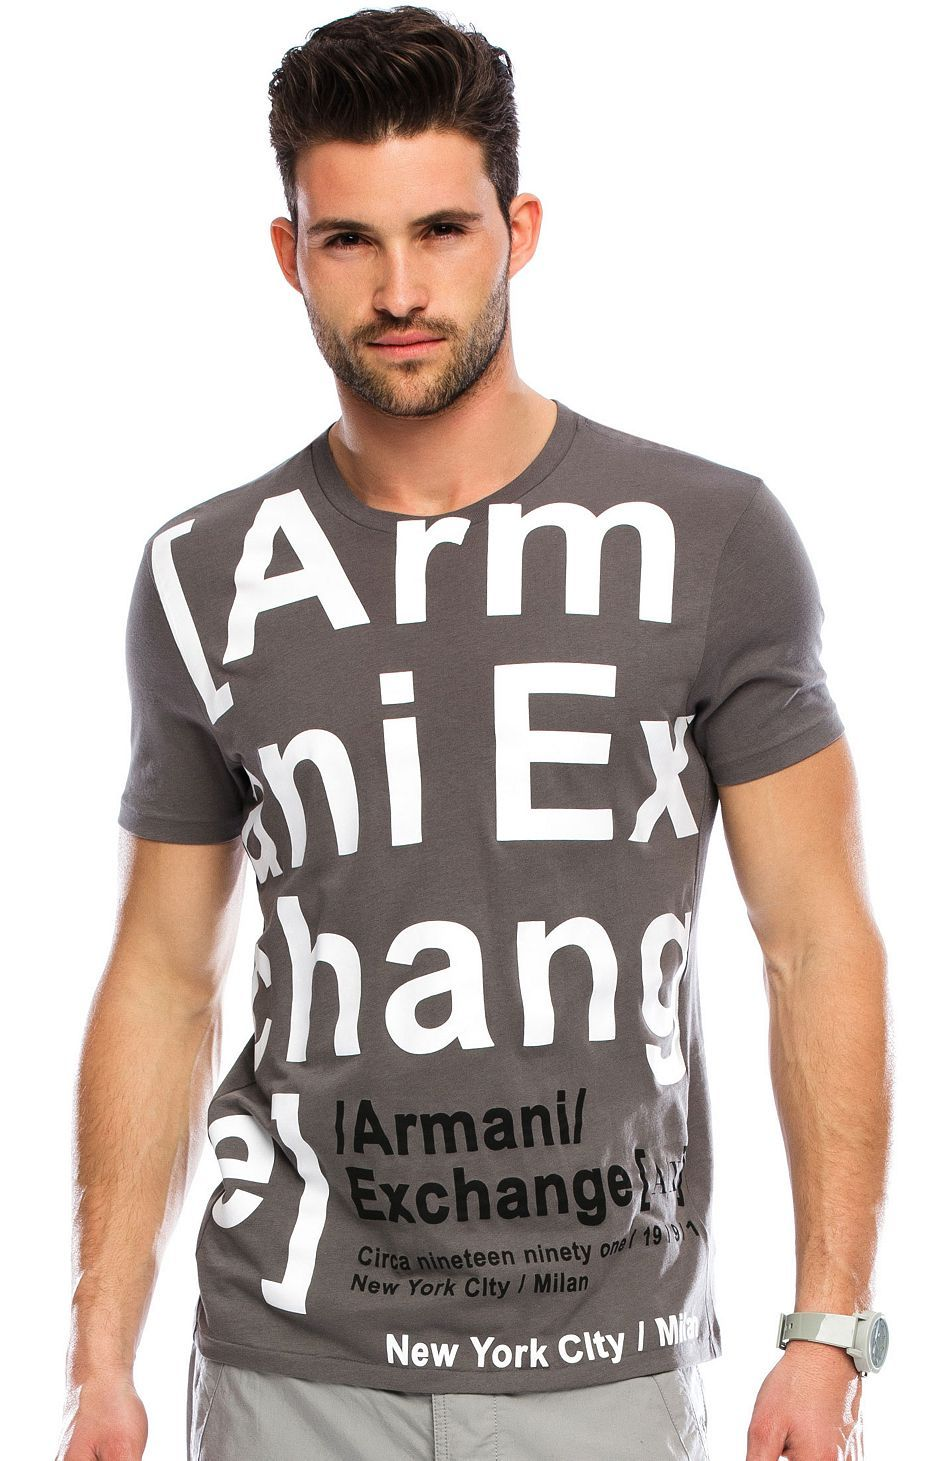 Armani Exchange Online Store   Clothing & Accessories for Men and Women.  Men's FashionFashion GraphicLogoOutfitT ShirtsProduct DevelopmentStyle Giorgio ...